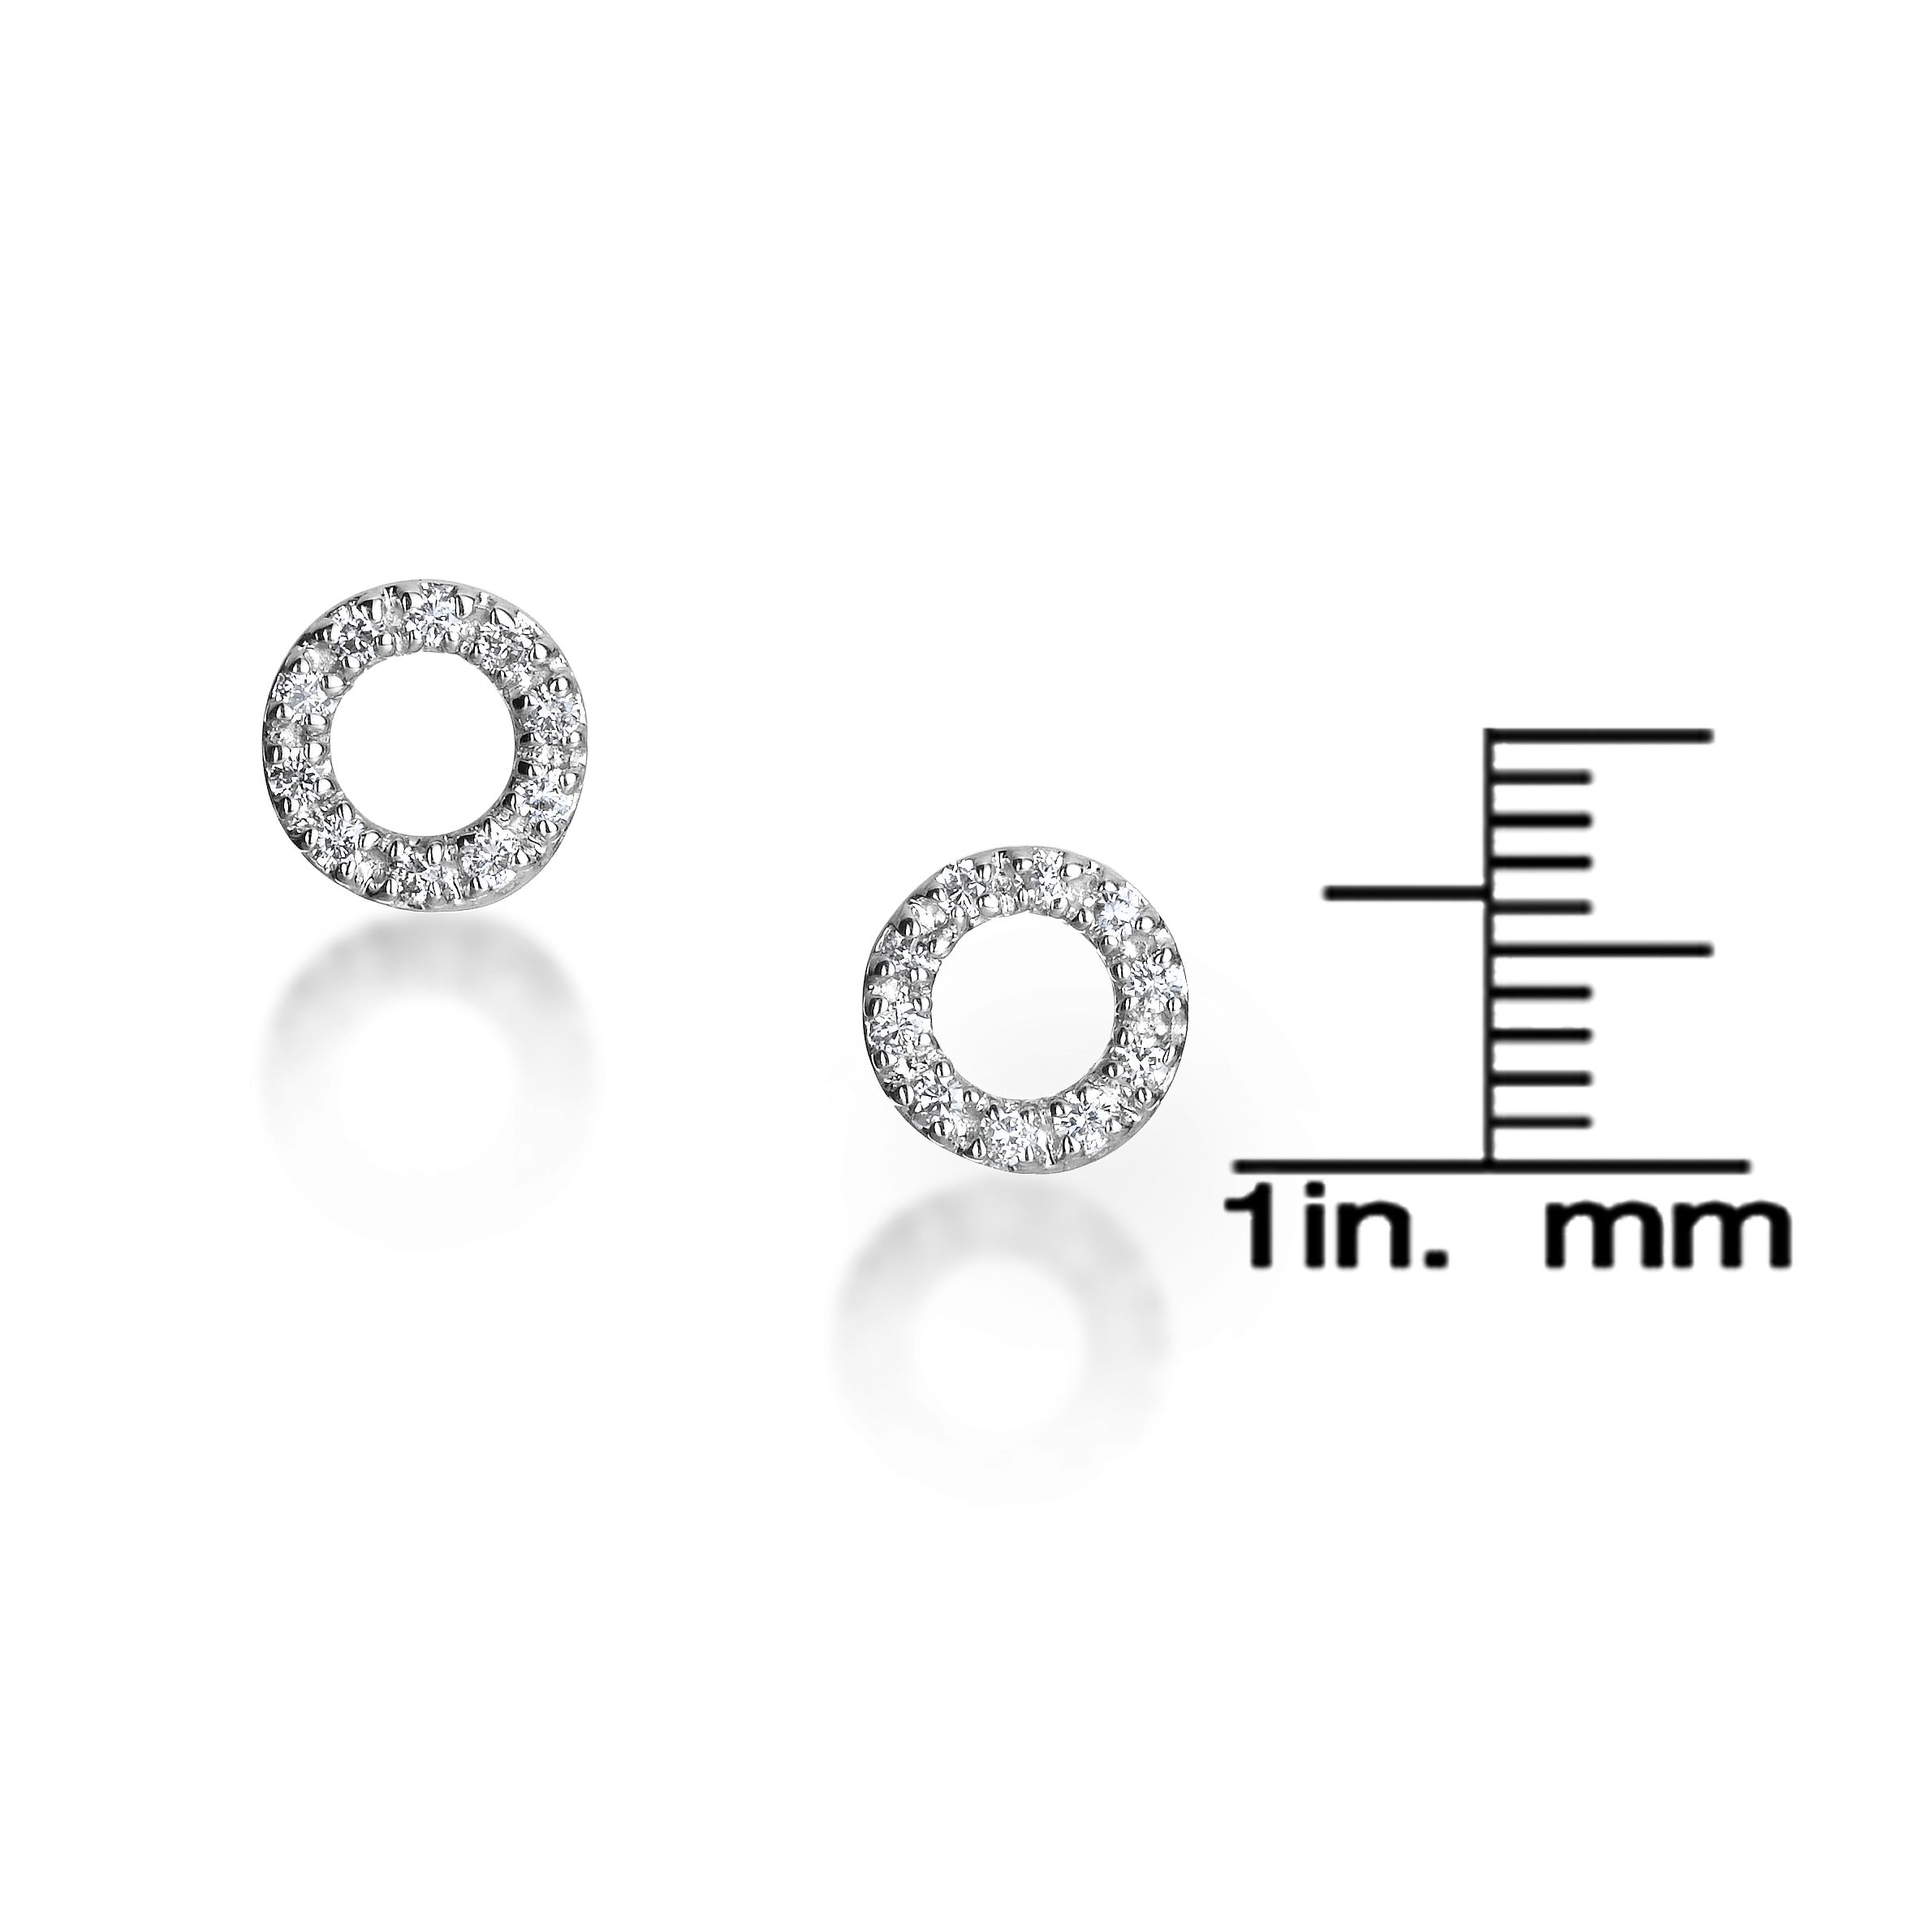 aa20f4ab6b2 14k White Gold Circle Diamond Accent Stud Earrings